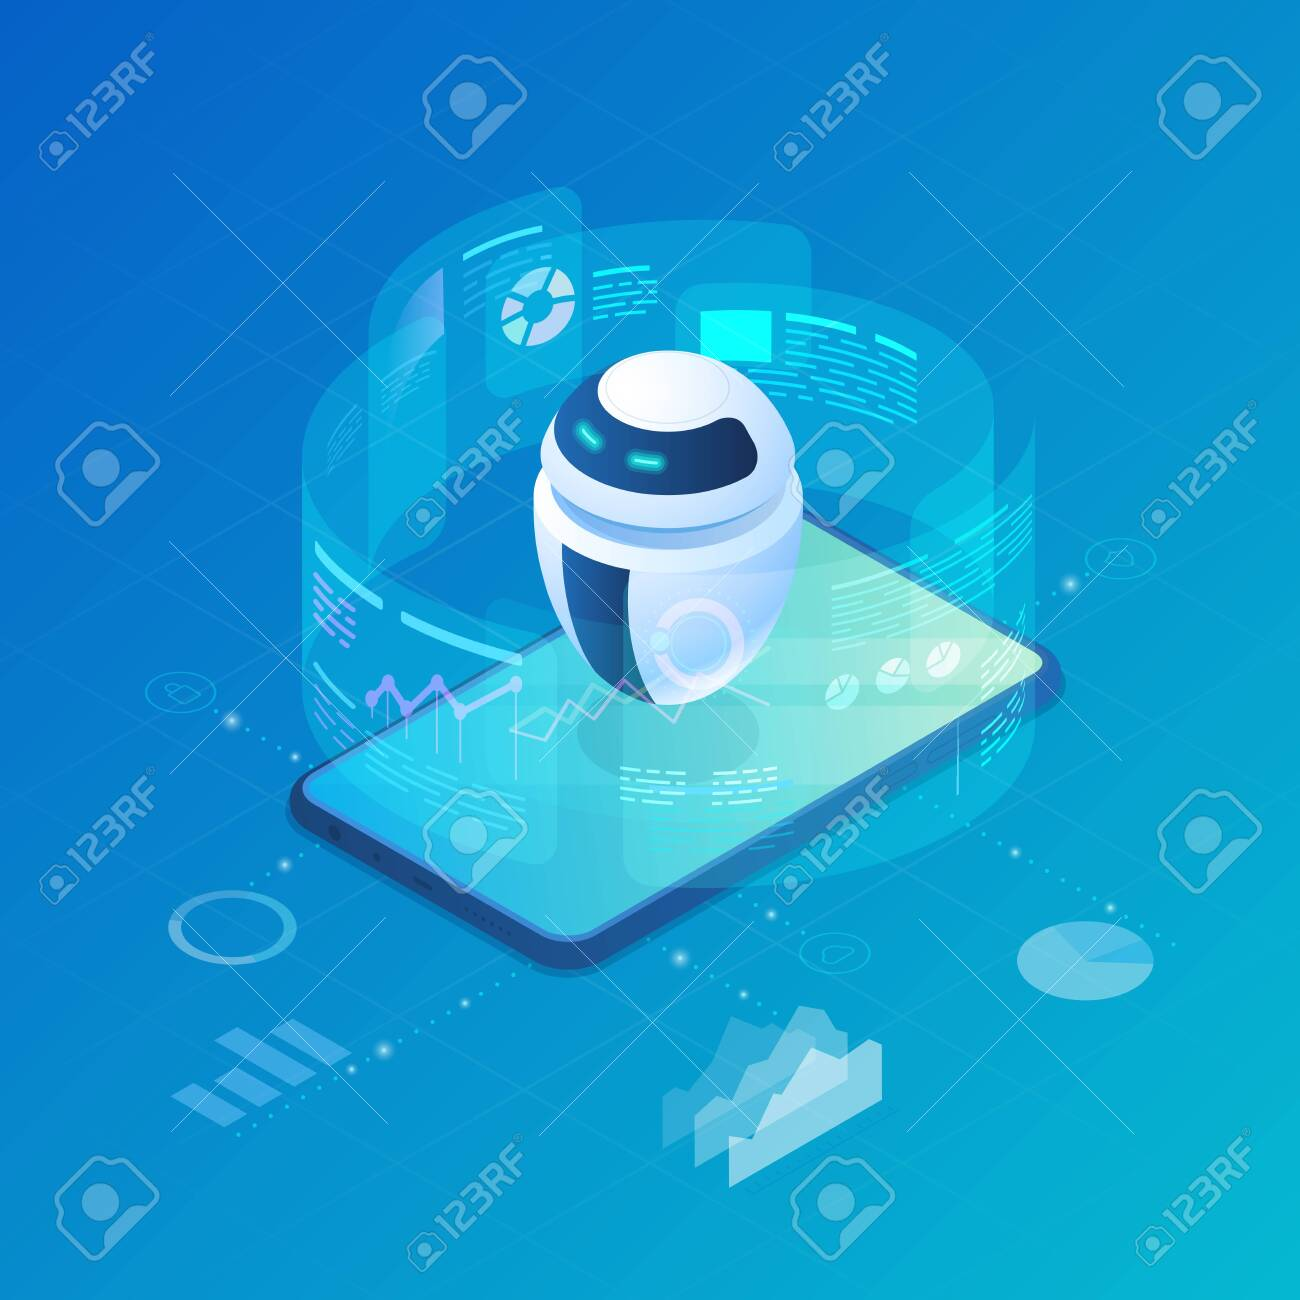 Isometric Robot Bot operating virtual HUD interface vector illustration. Artificial Intelligence, Automation Process Technology and engineering. - 129818429